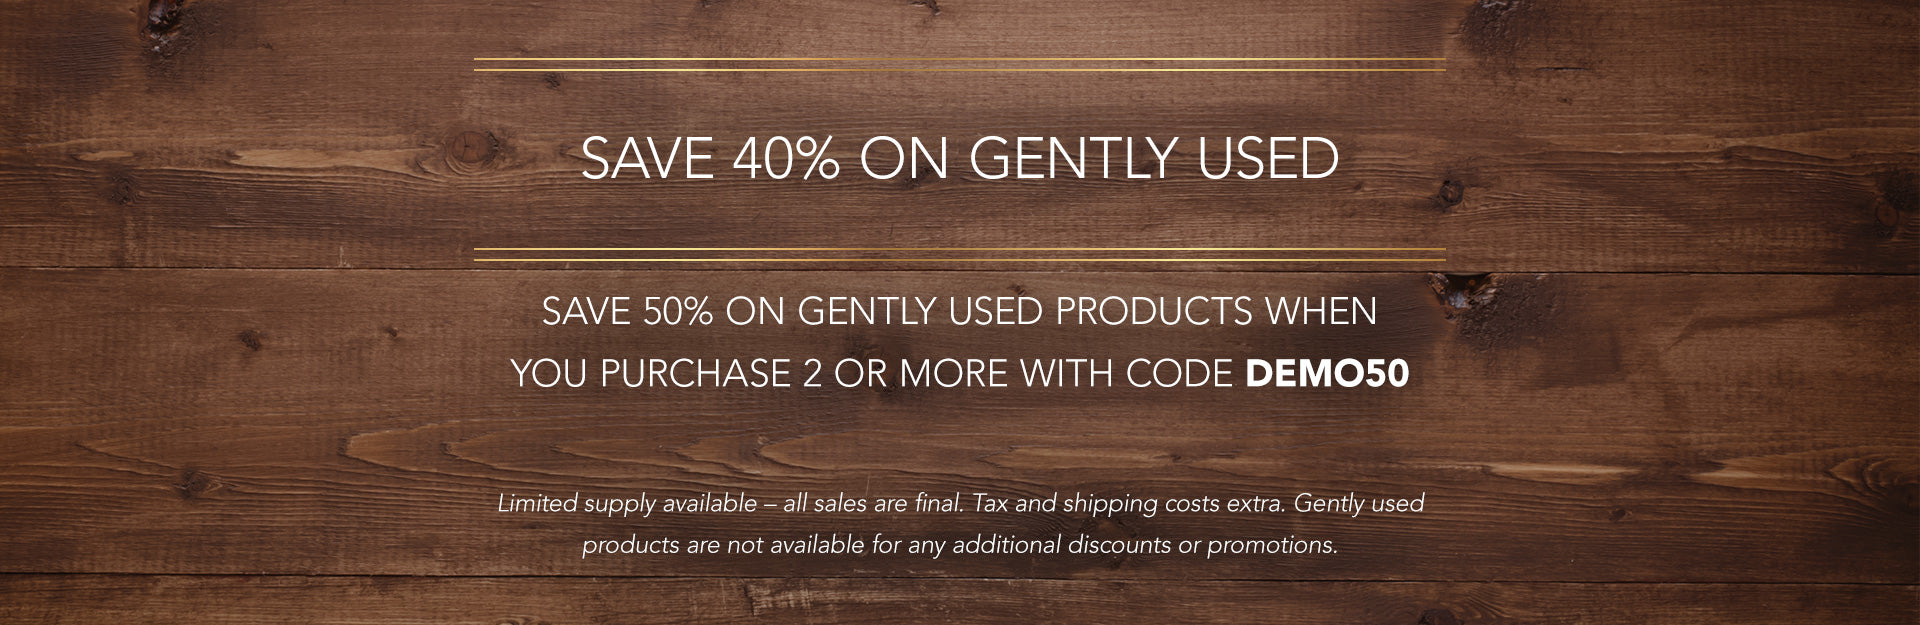 Save 40% on Gently Used – Save 50% on Gently Used when you purchase 2 or more